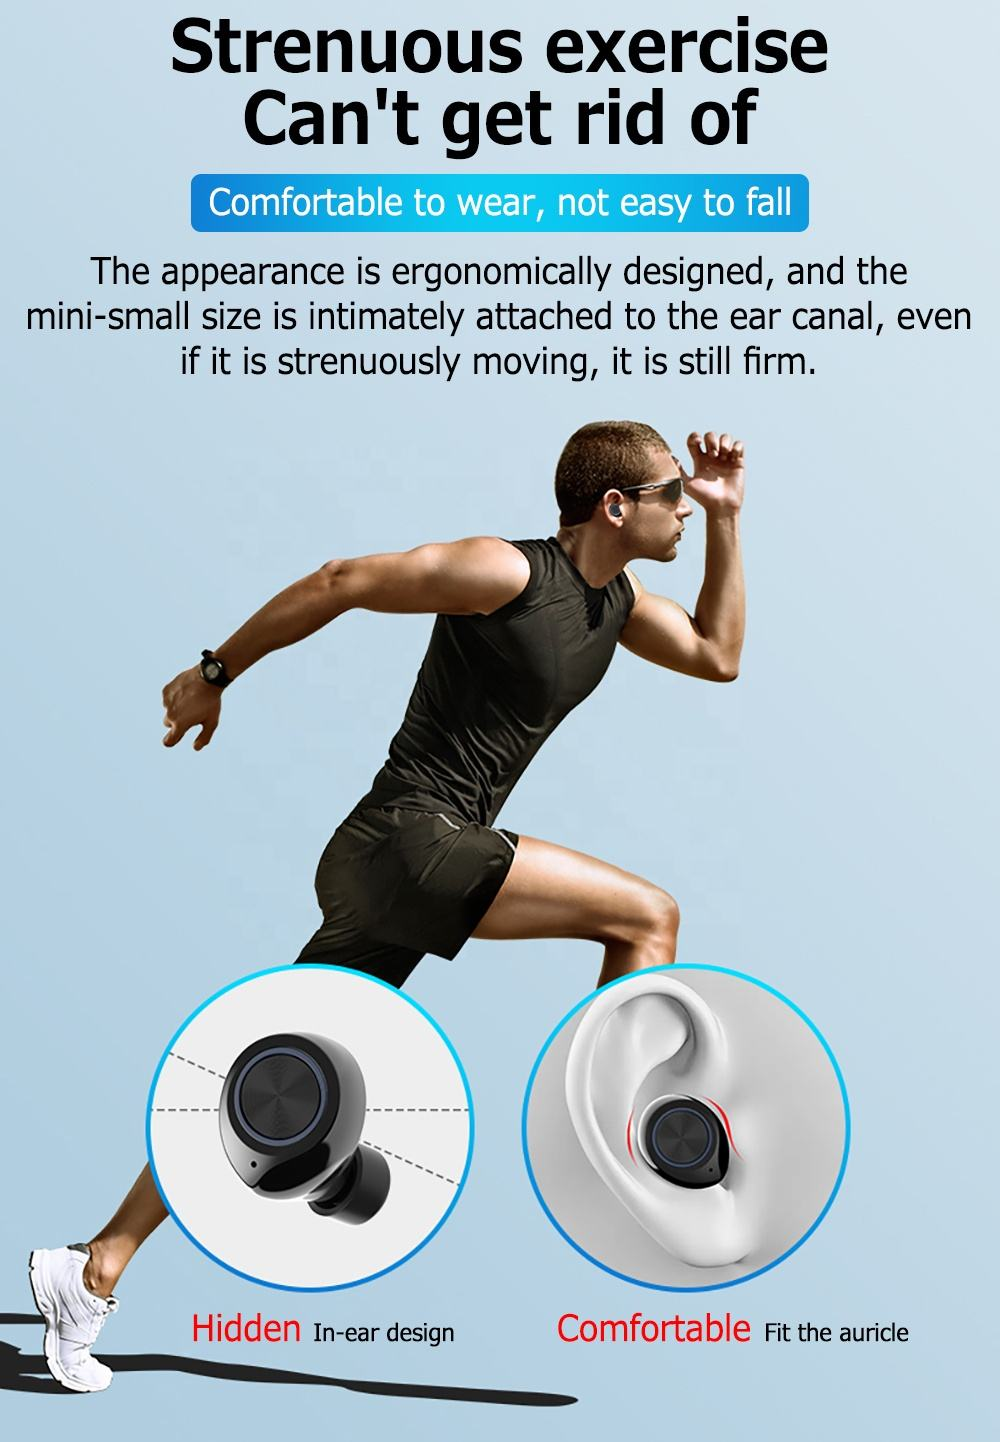 Waterproof [ Earphones ] Design Earphones Enle Private Amazon Ebay Hot Selling Sports Mini Wireless Bluetooth 5.0 Earbuds Earphones Tw60 Macaron Pods TWS